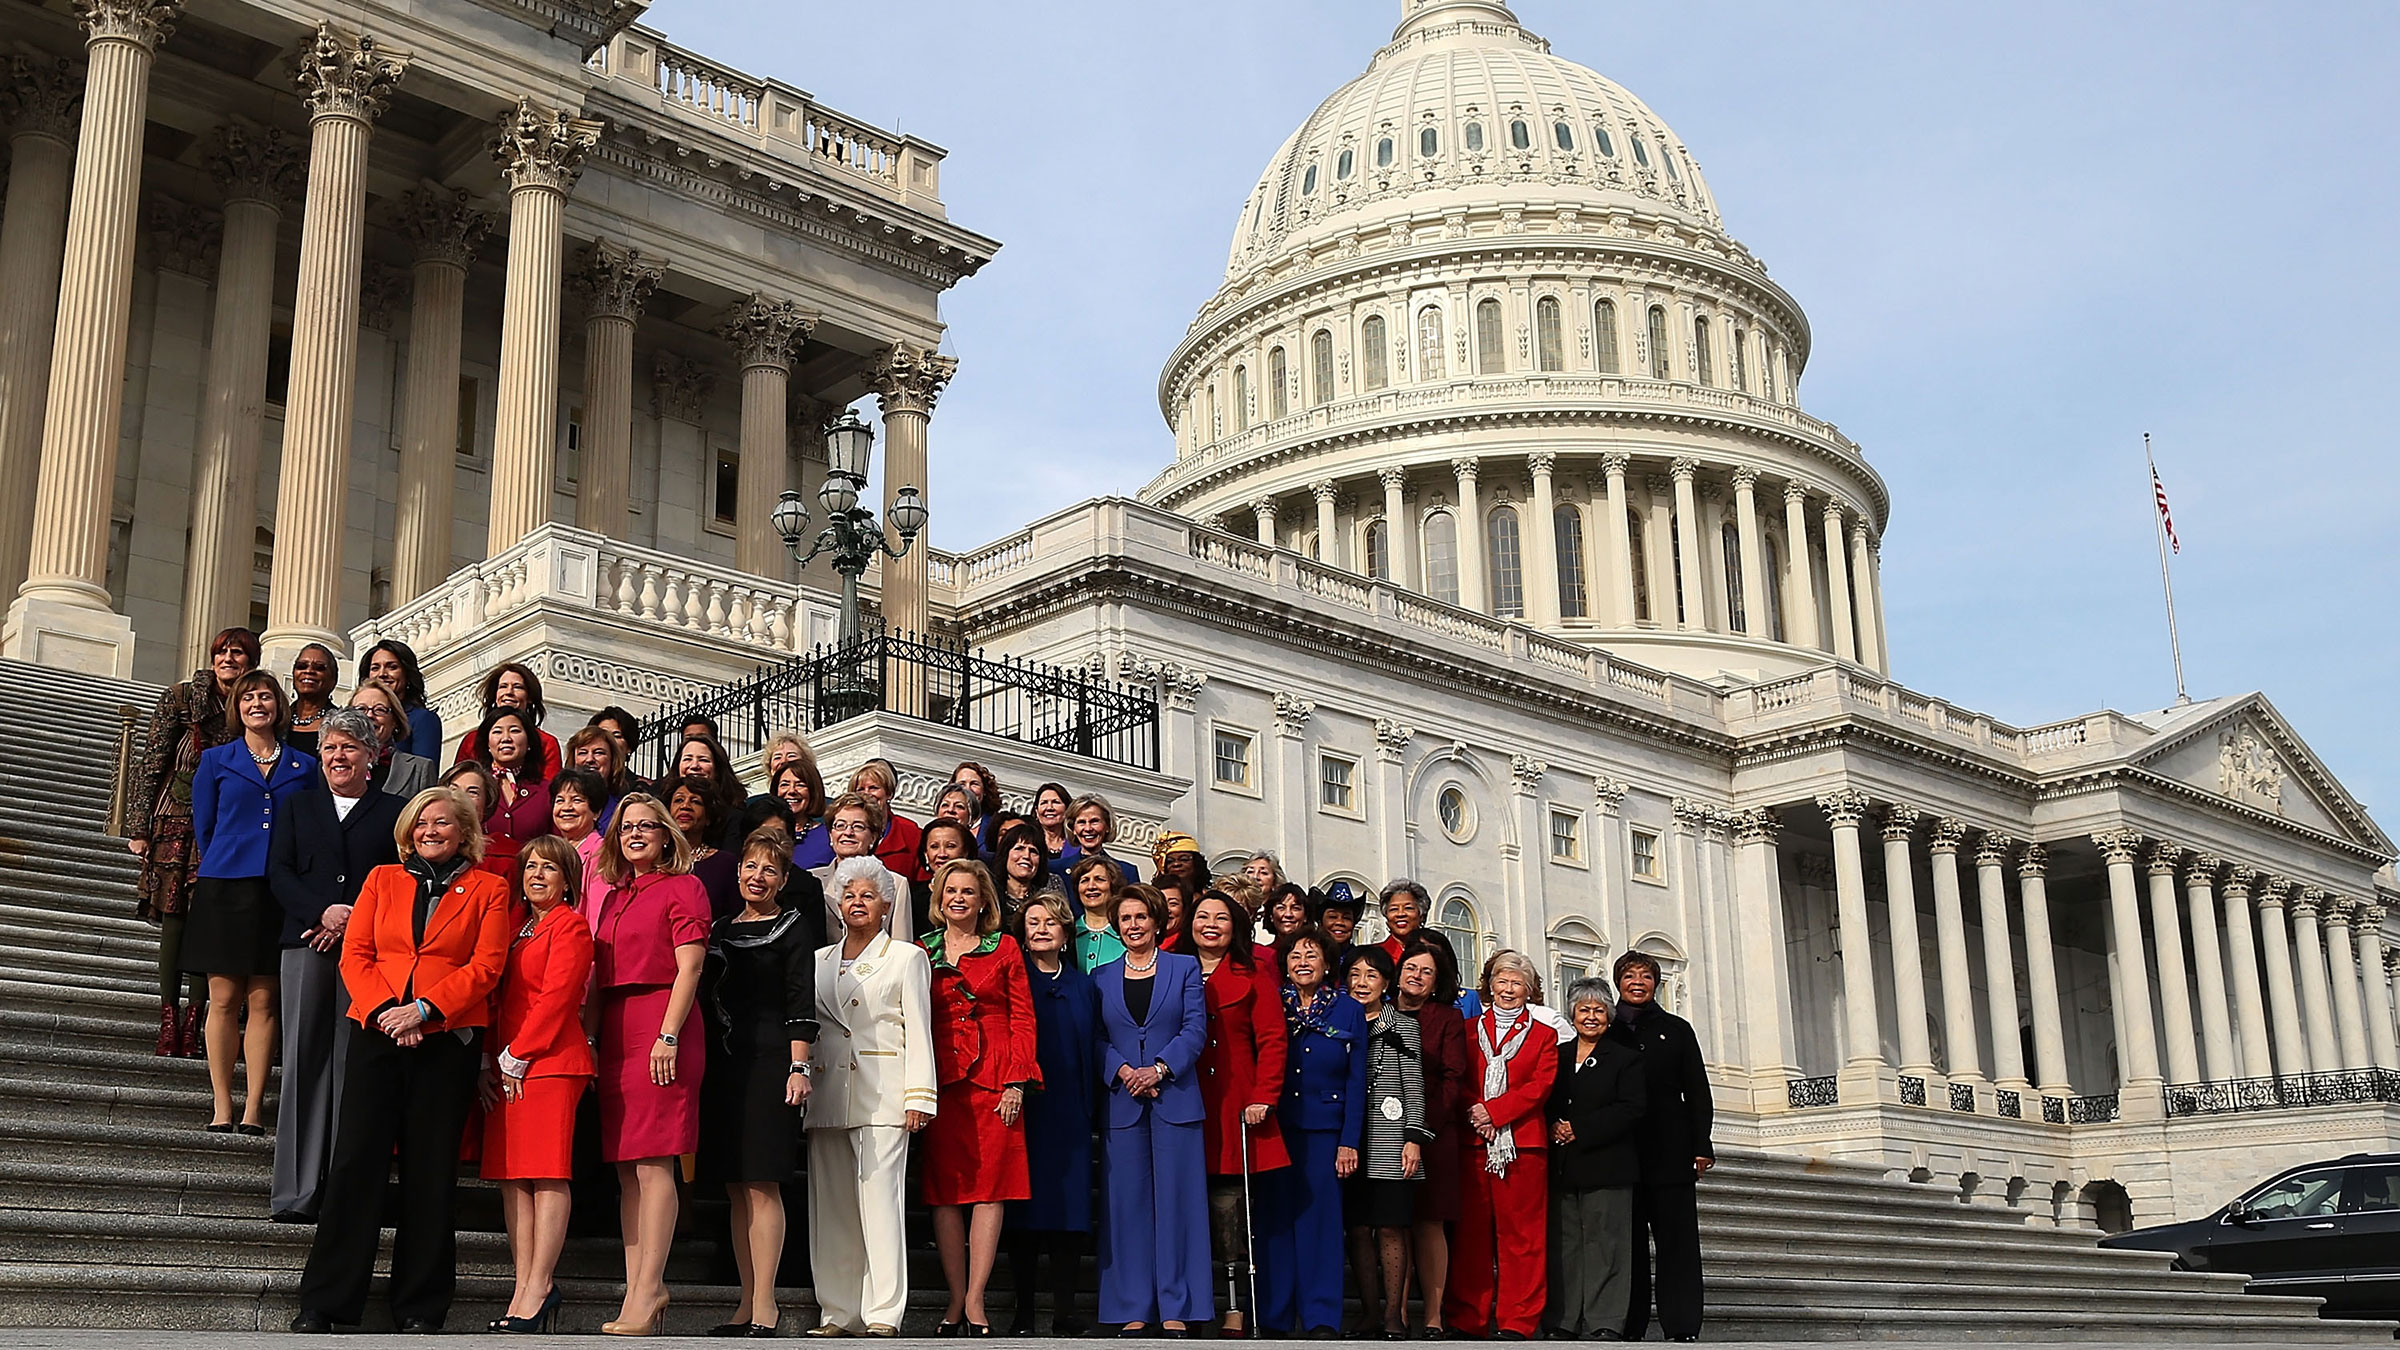 Jan. 3, 2013. The Democratic women of the United States House of Representatives. The 113th Congress includes the most female representatives ever.